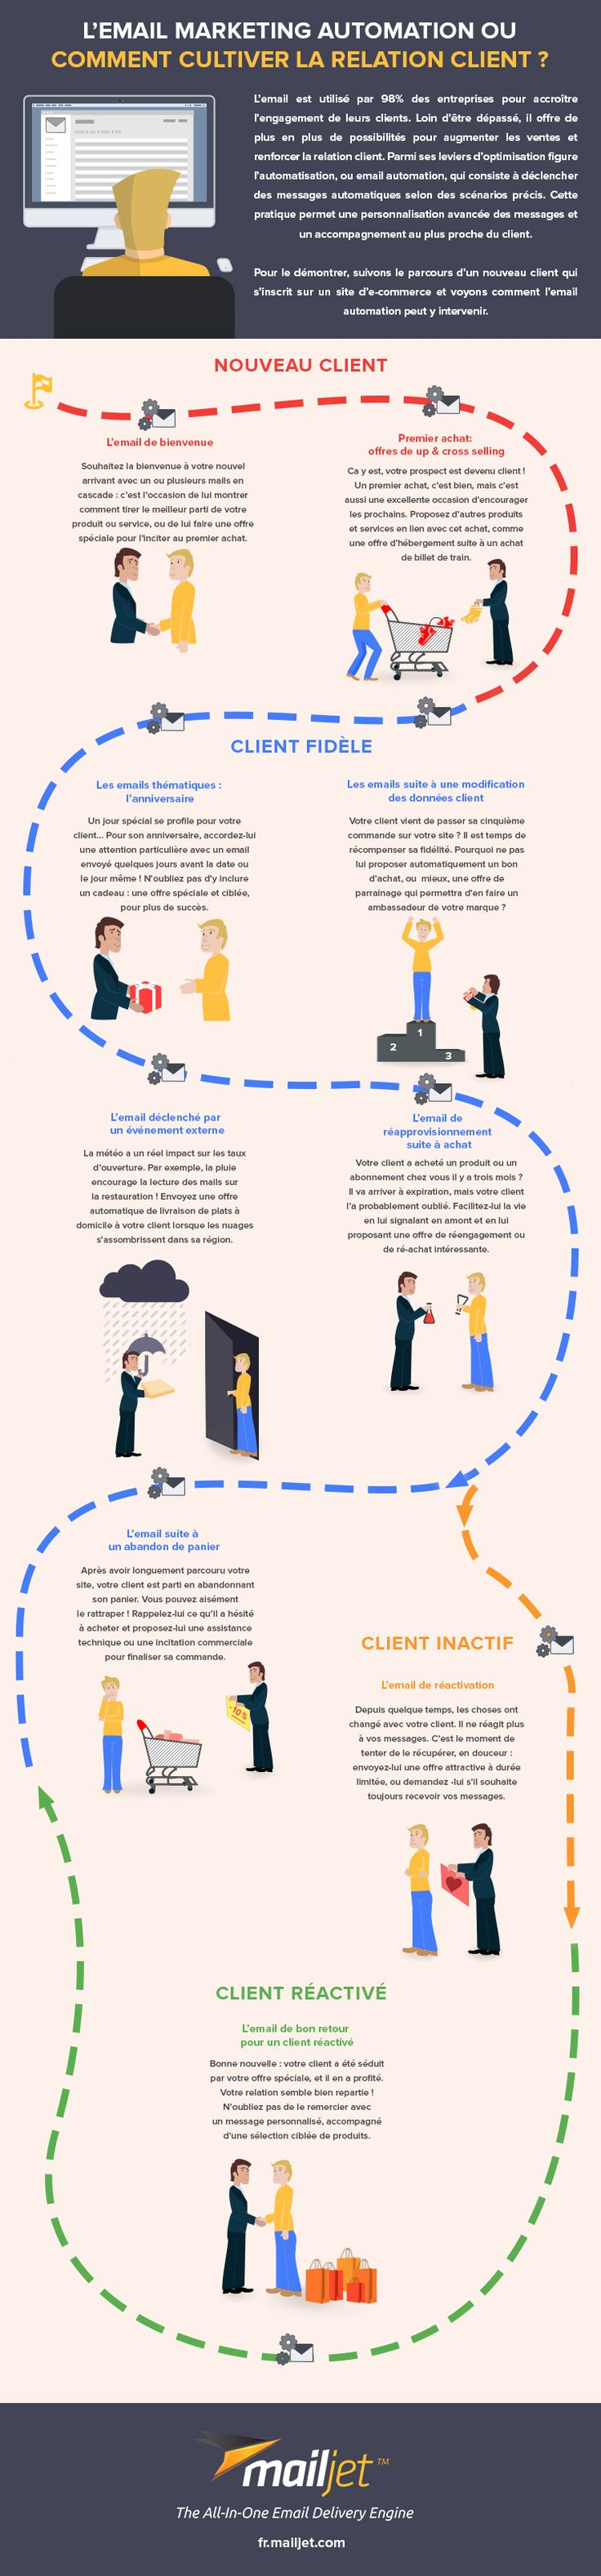 [Infographie] Emails automatisés - comment cultiver la relation client? #digital #marketing #automation